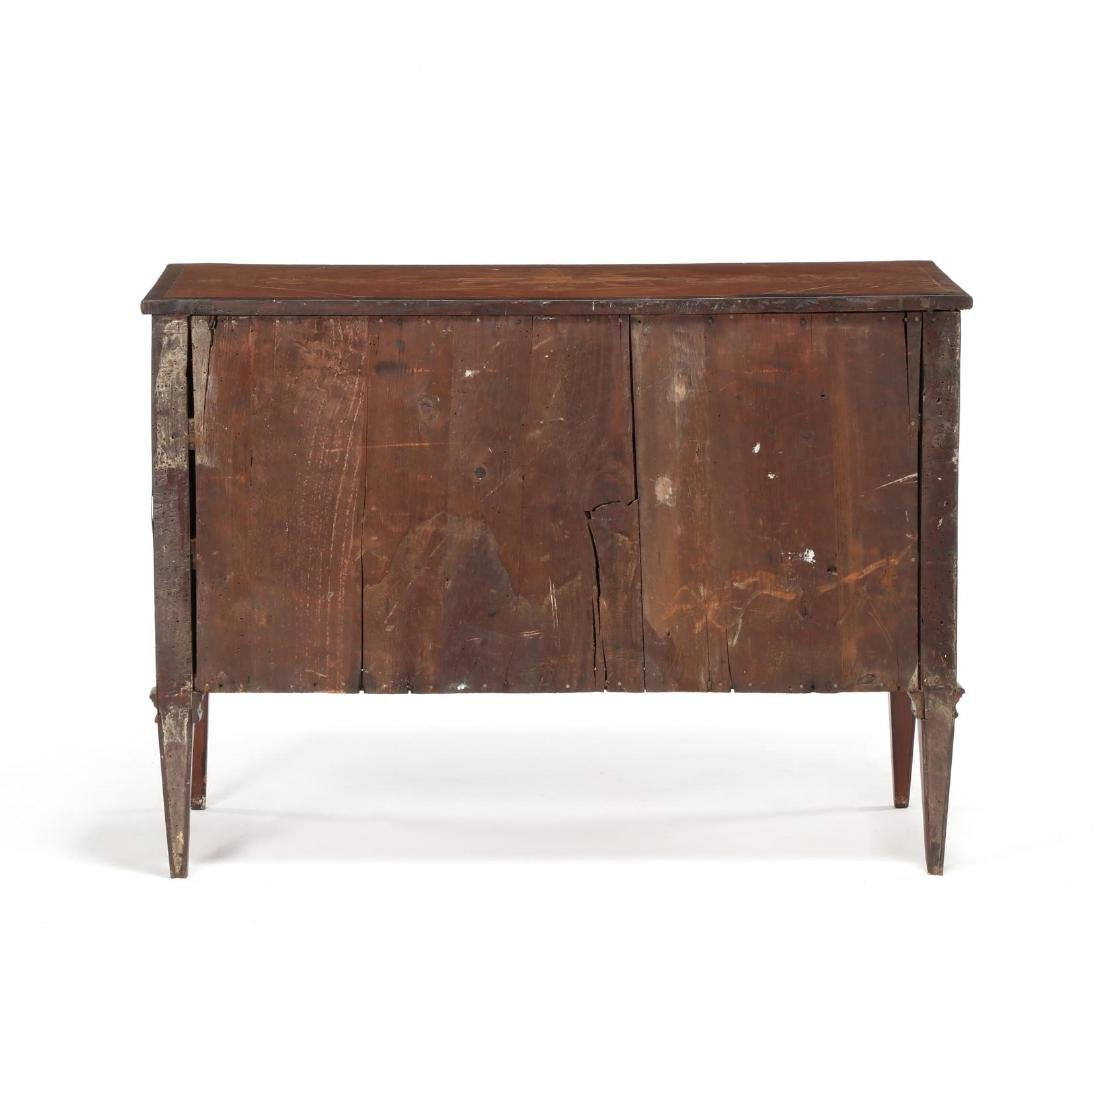 Italian Marquetry Inlaid Commode - 6